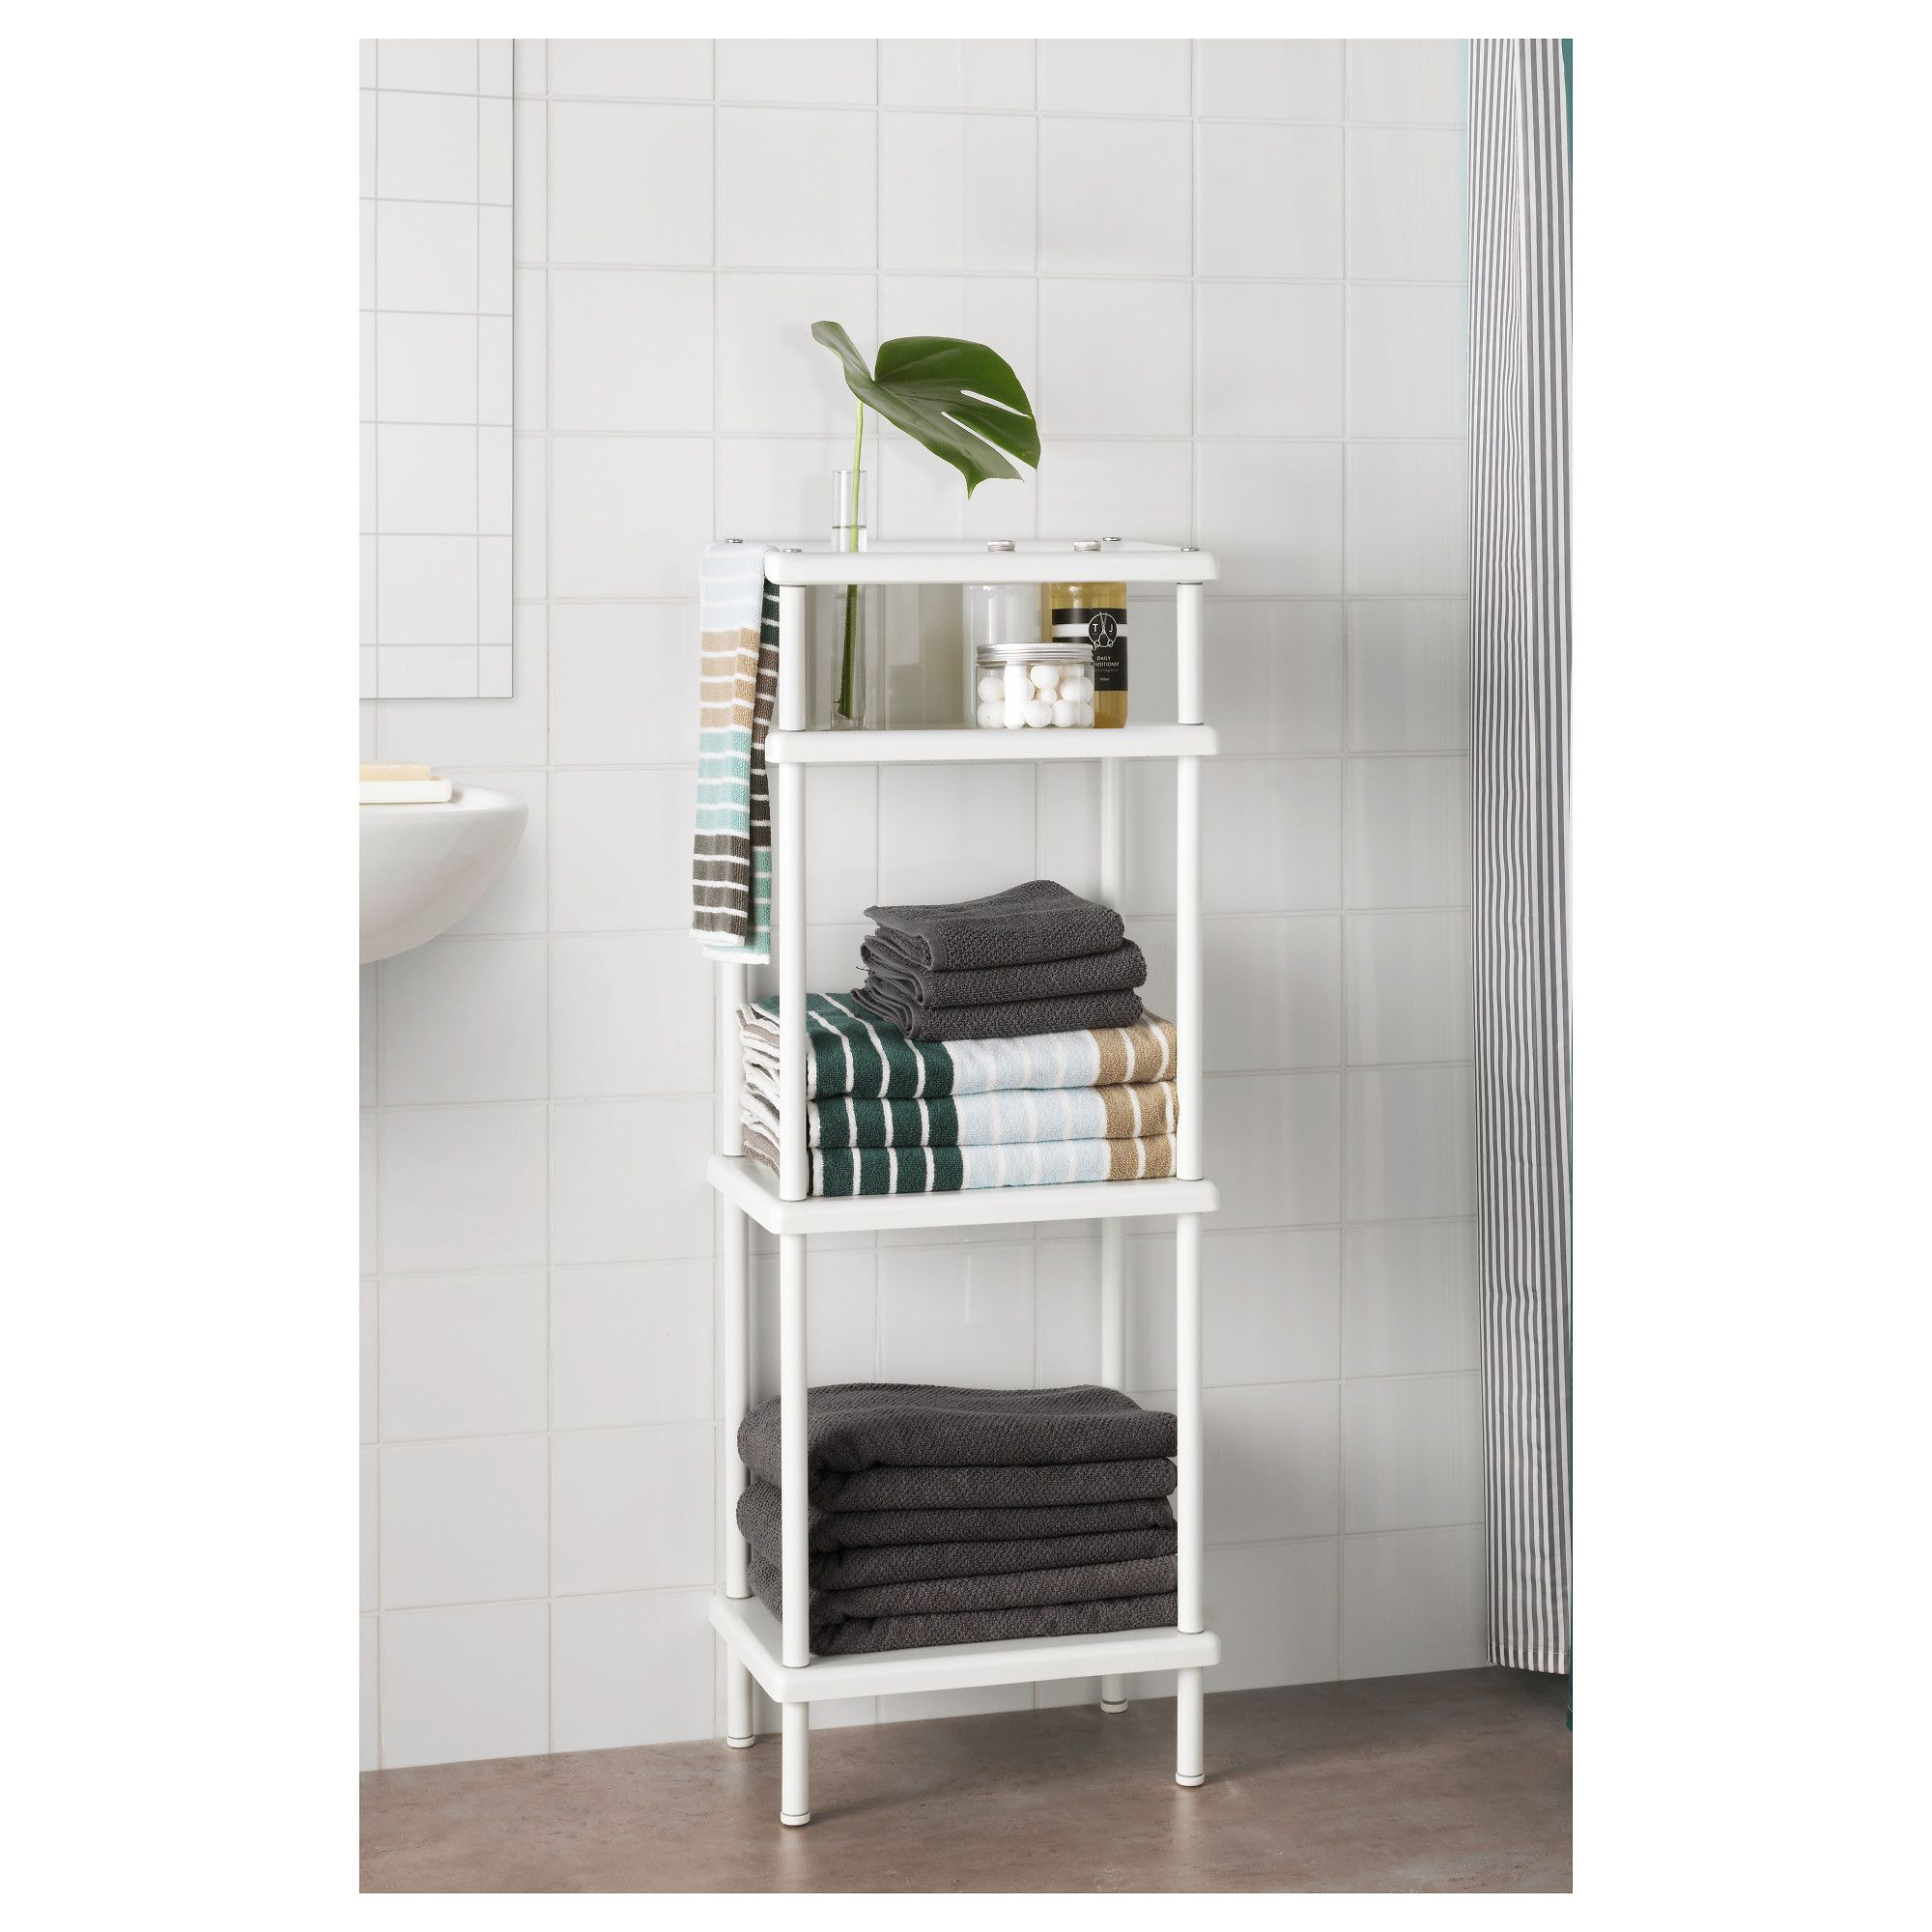 Ikea Dynan Shelf Unit With Towel Rail White